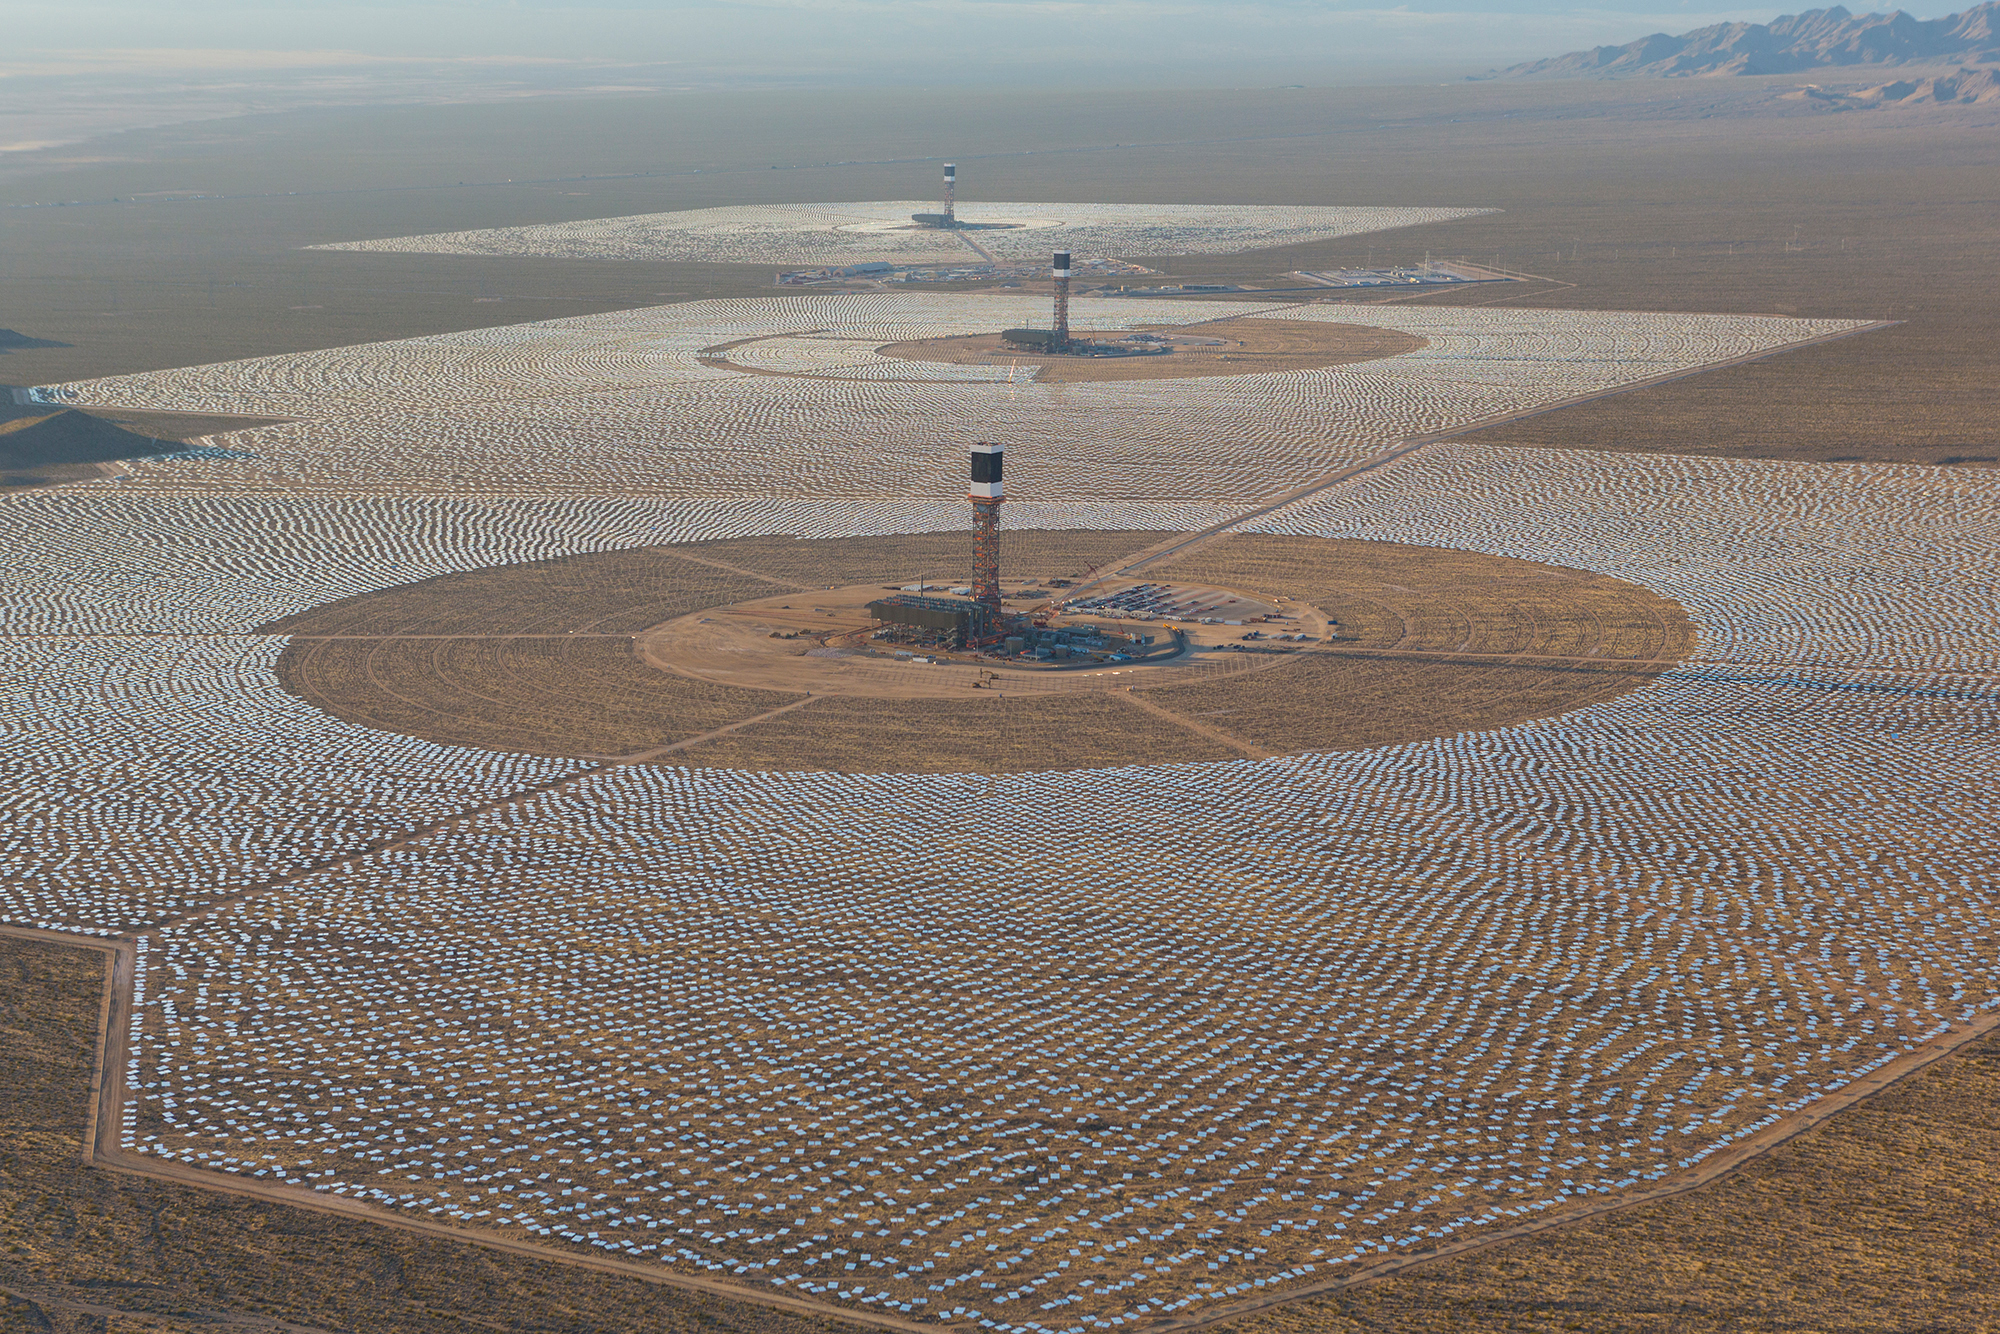 World s st Solar Thermal Power Project at Ivanpah Achieves